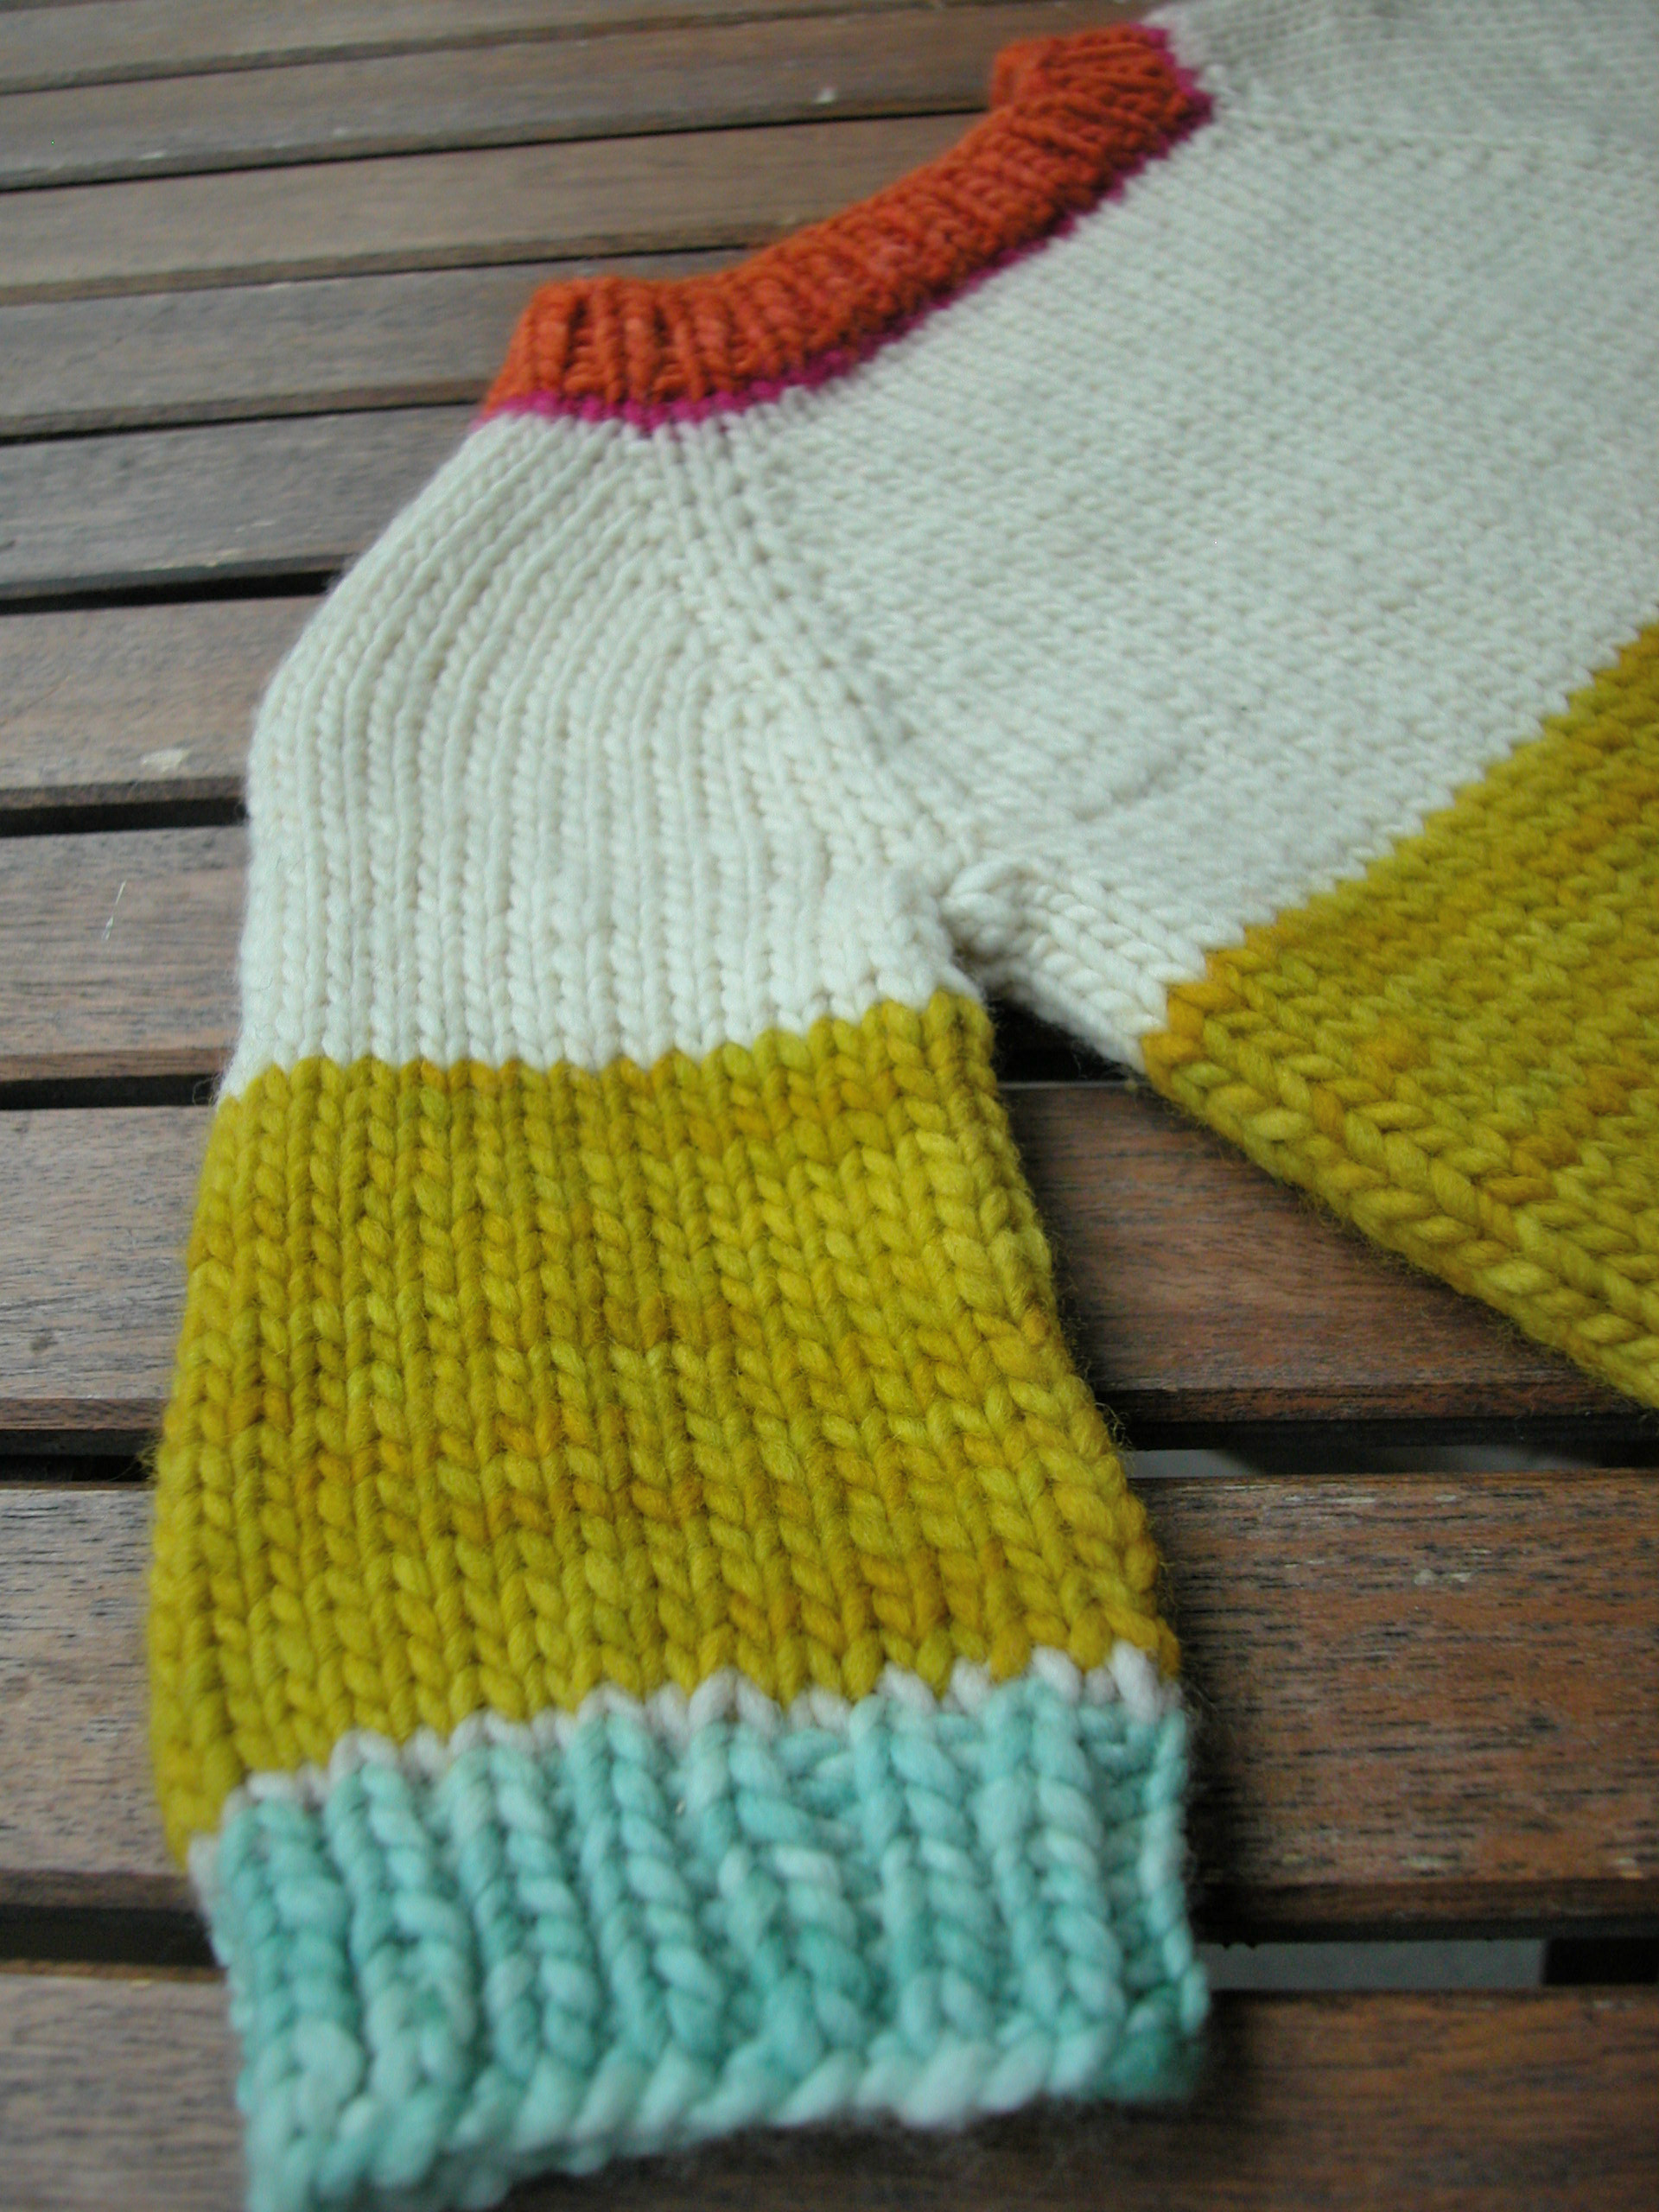 Tips For Knitting Your First Sweater : Make your first sweater here the knit cafe